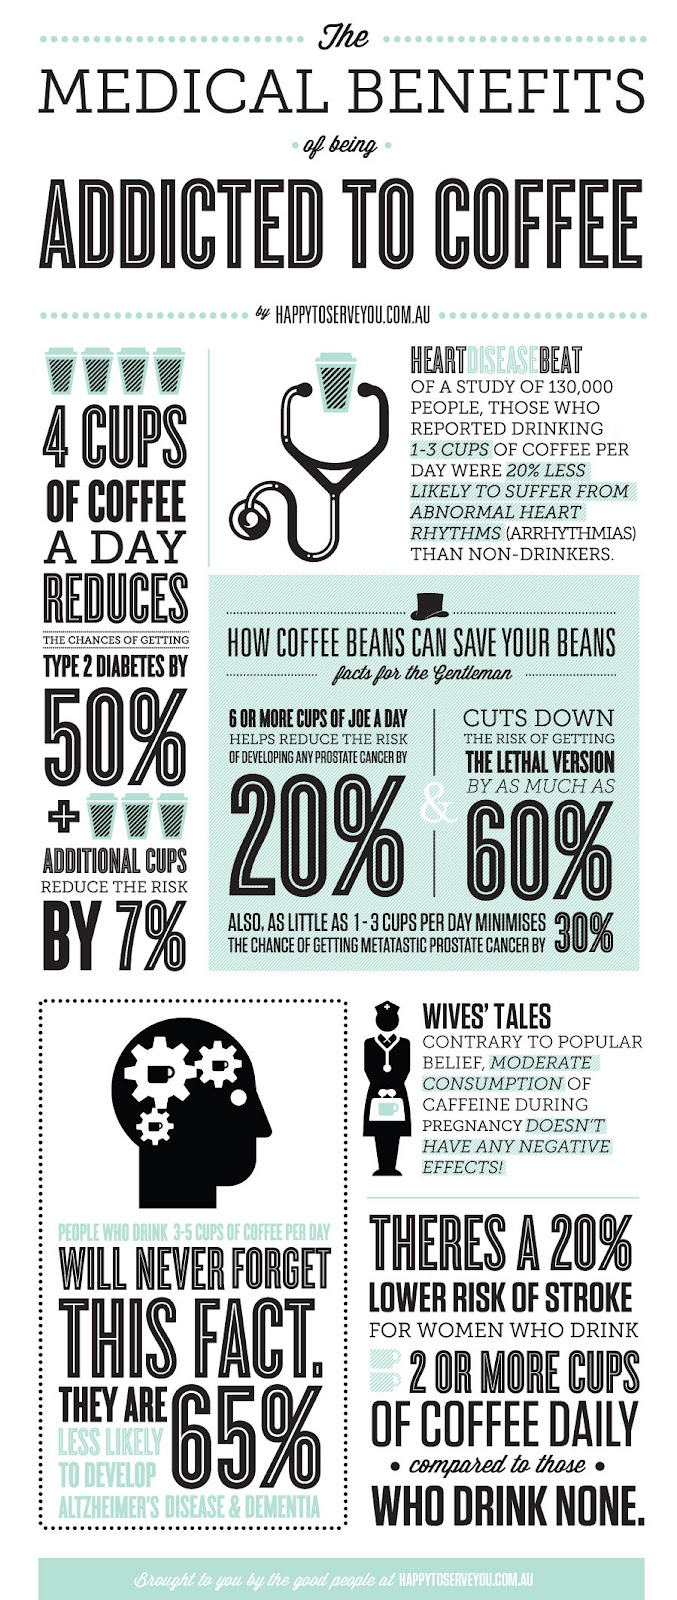 Benefits of Drinking Coffee Regularly